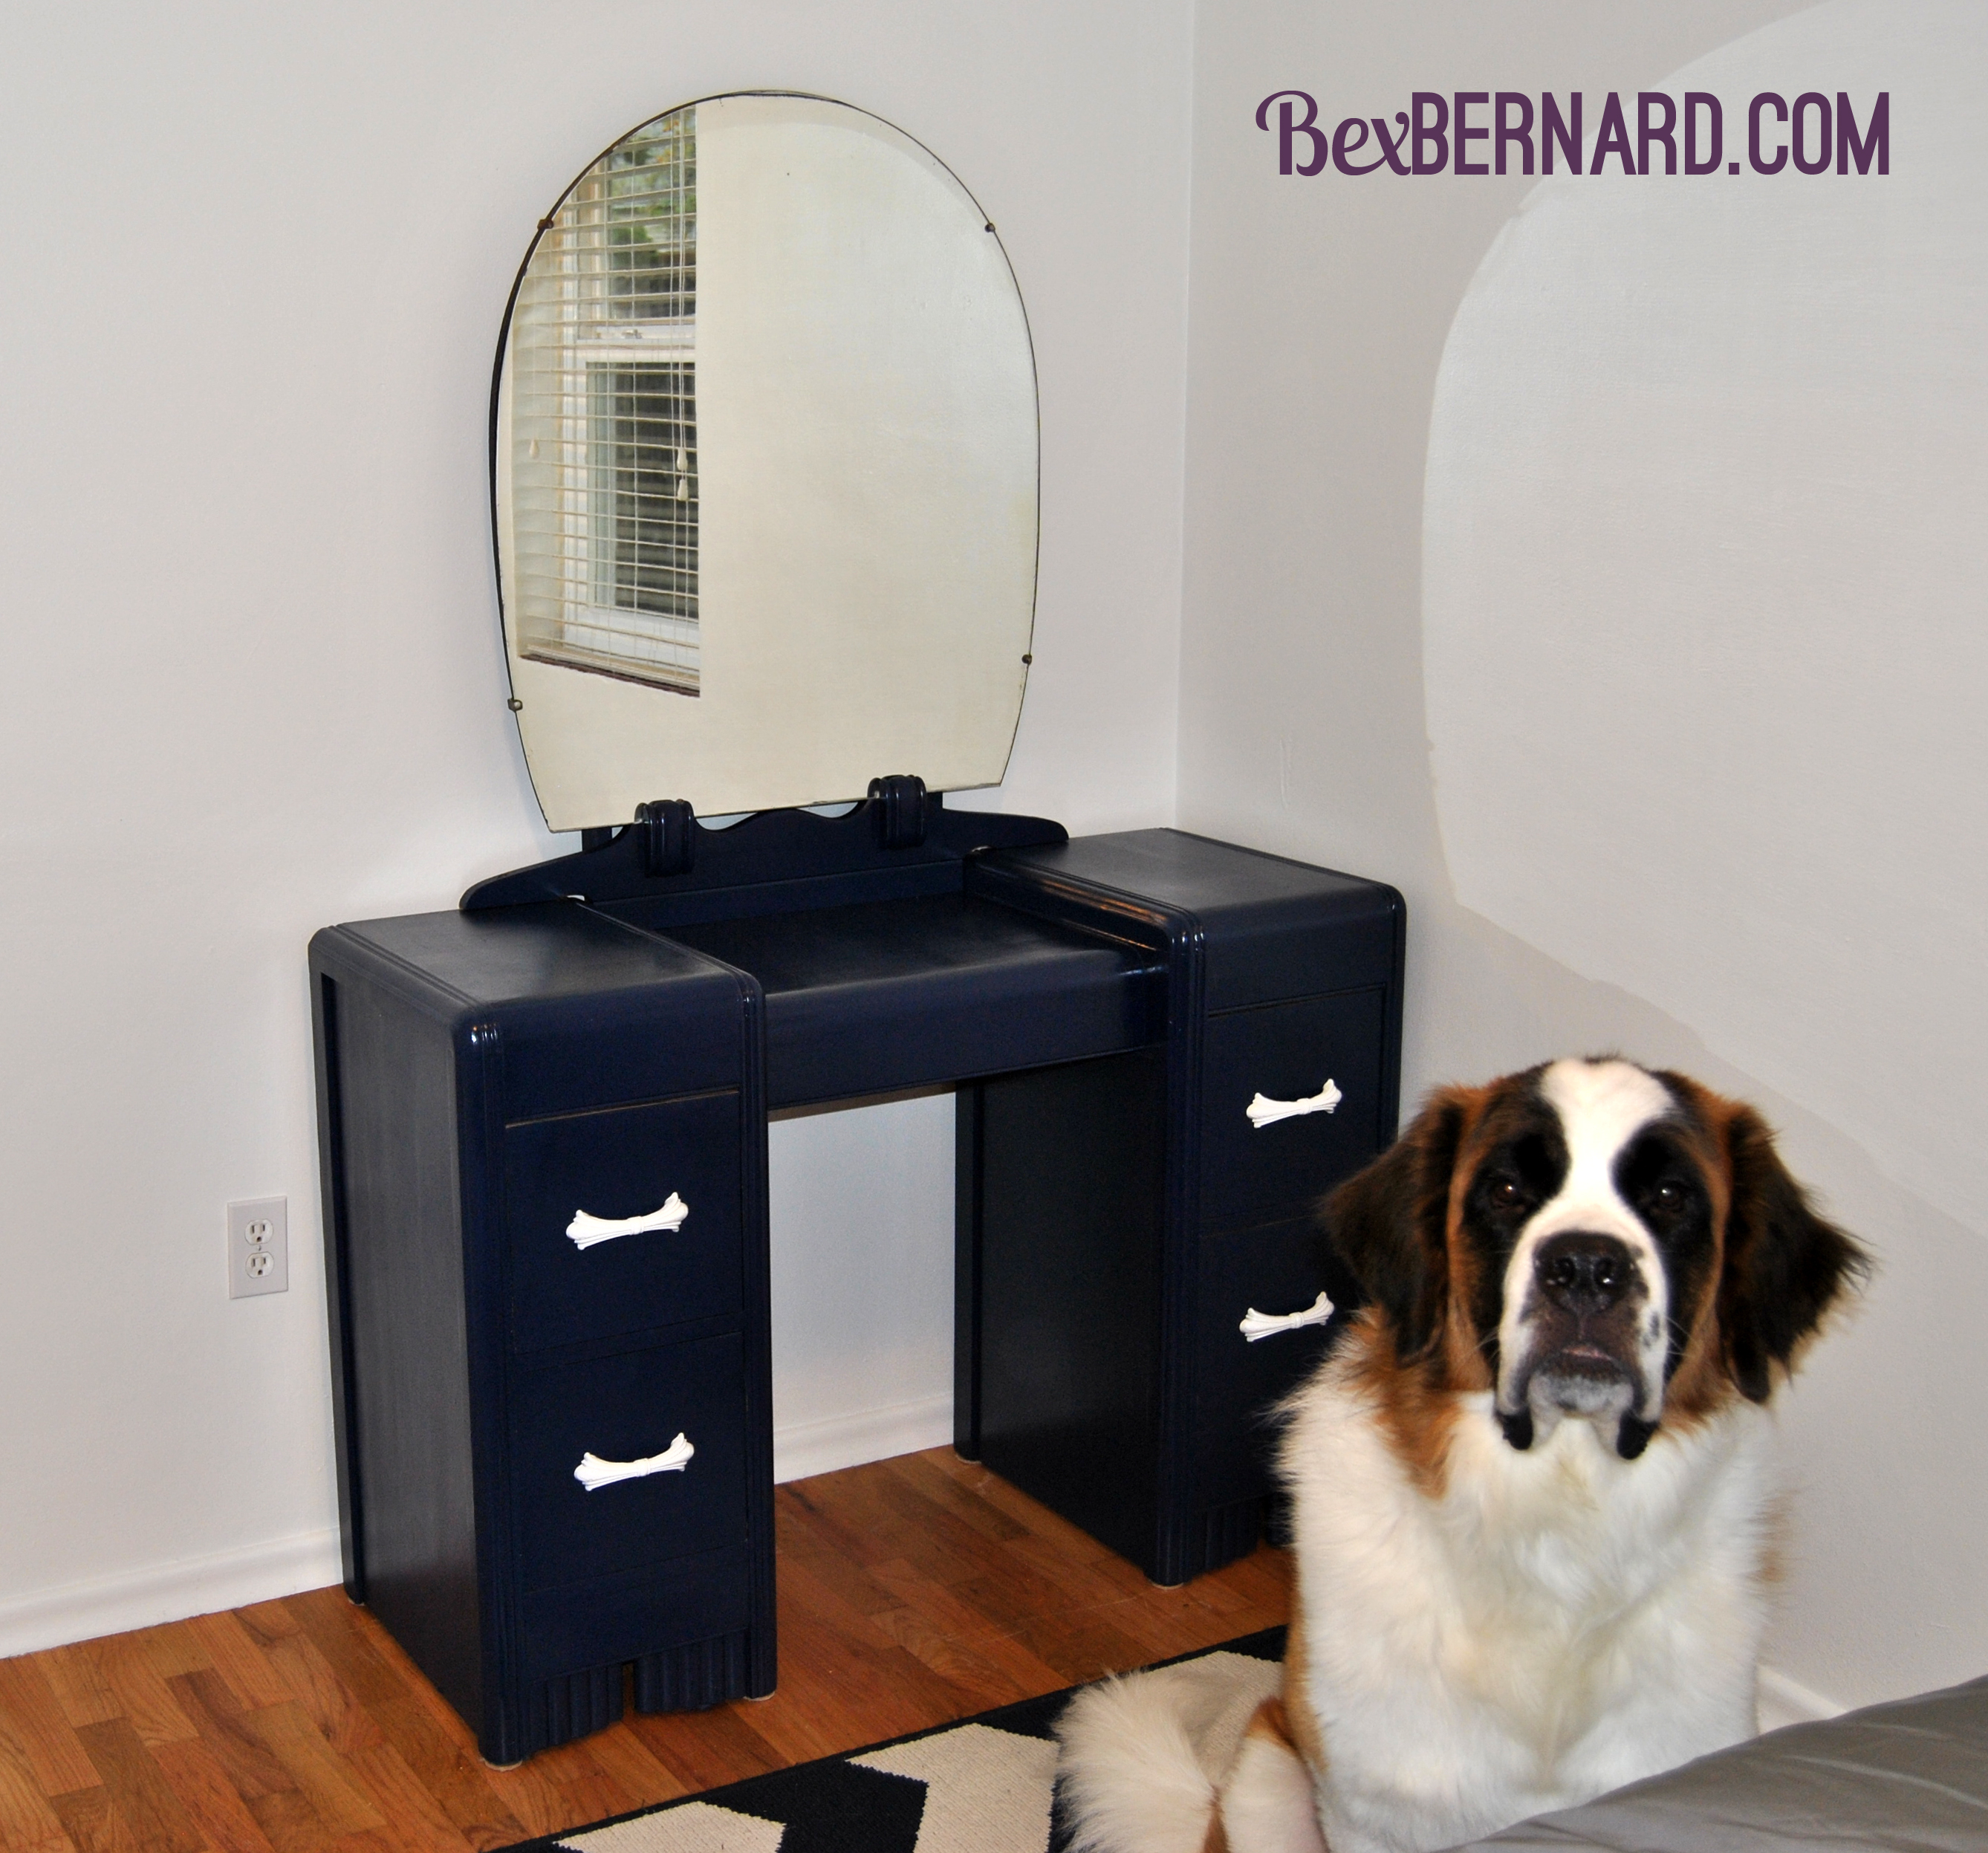 how to refinish wood furniture. diy paint vanity, desk, dresser for blue and white nautical room. | bexbernard.com